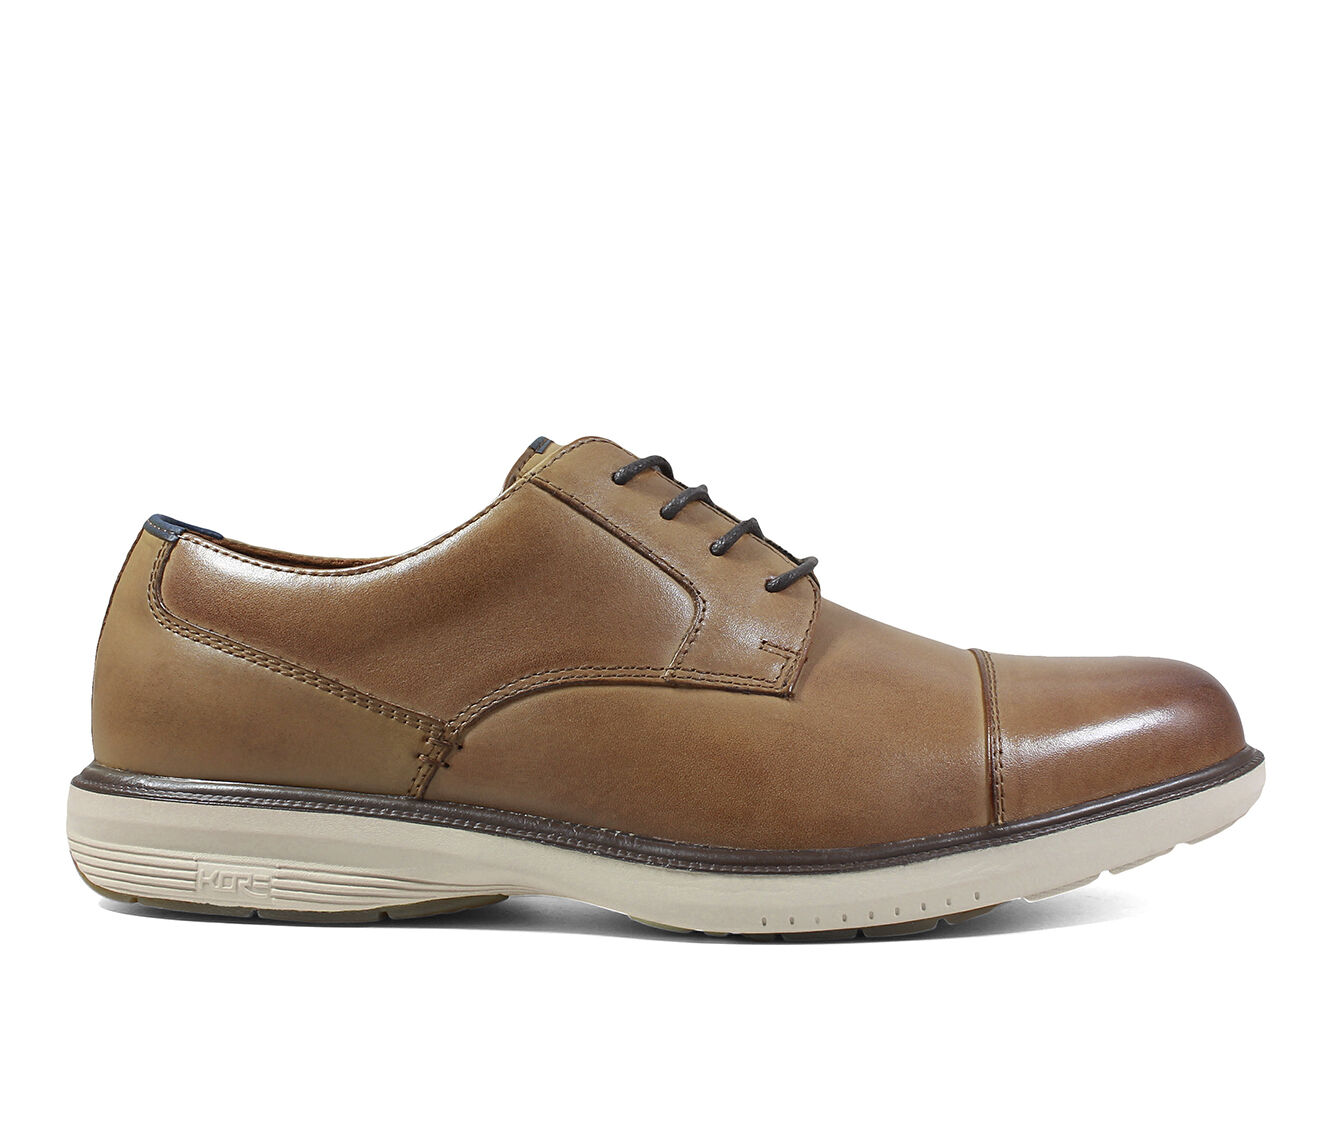 purchase comfortable Men's Nunn Bush Melvin Street Cap Toe Oxfords Camel